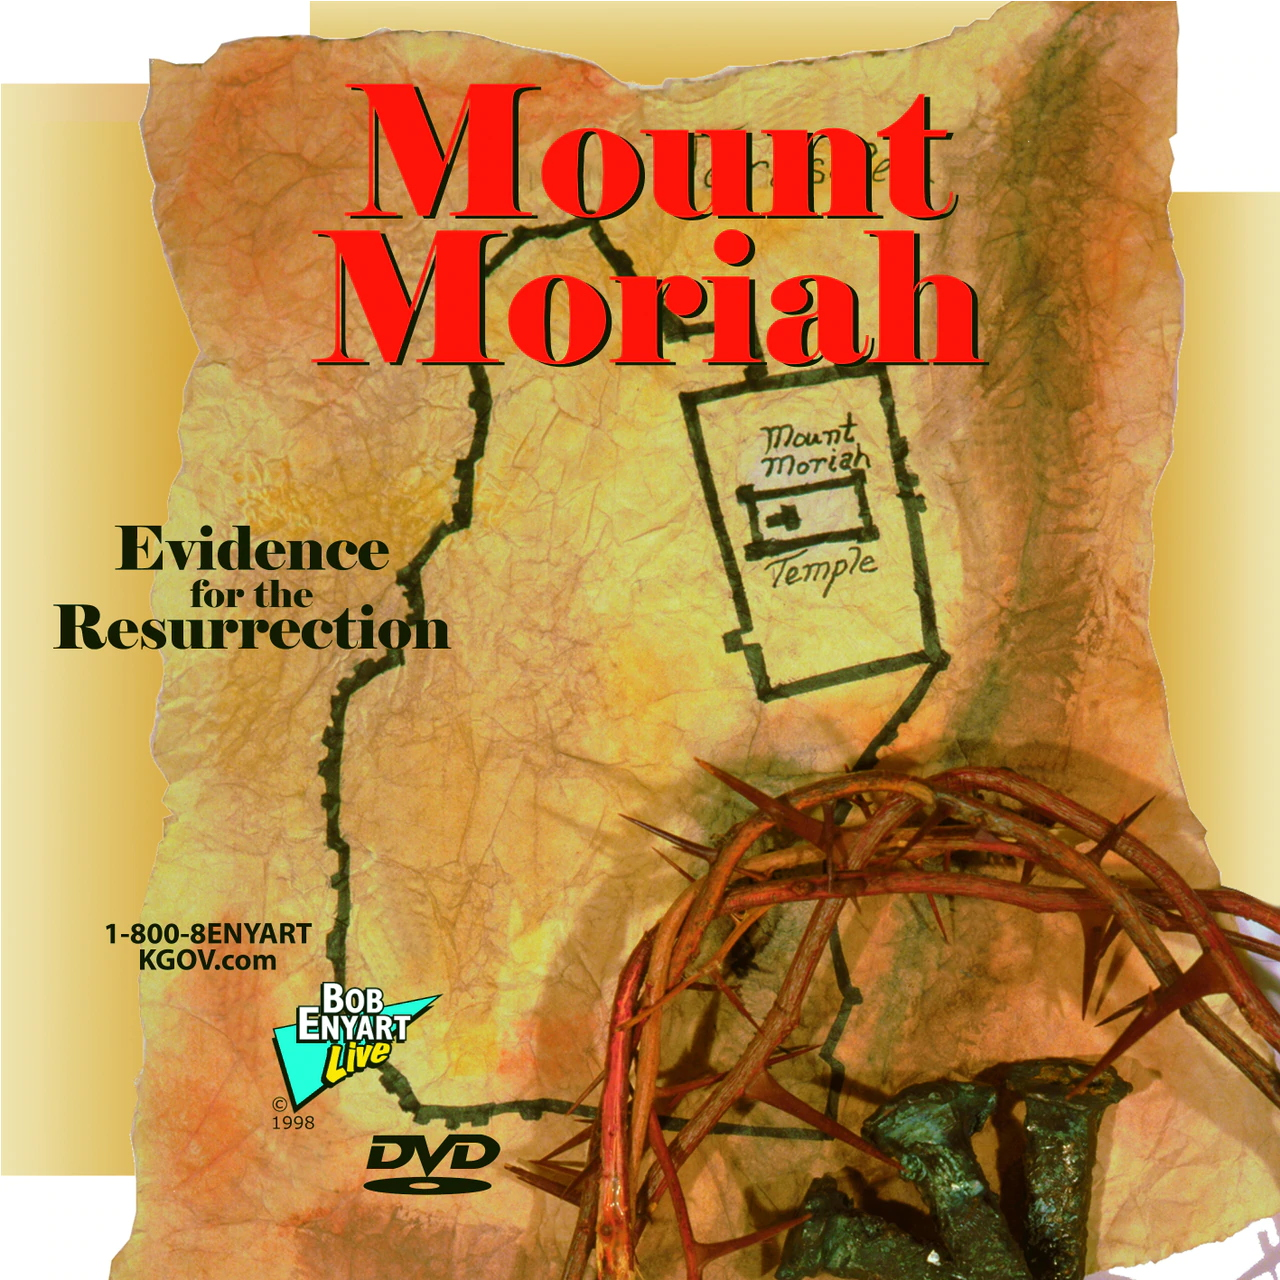 BEL's Mount Morah video on the Evidence for the Resurrection